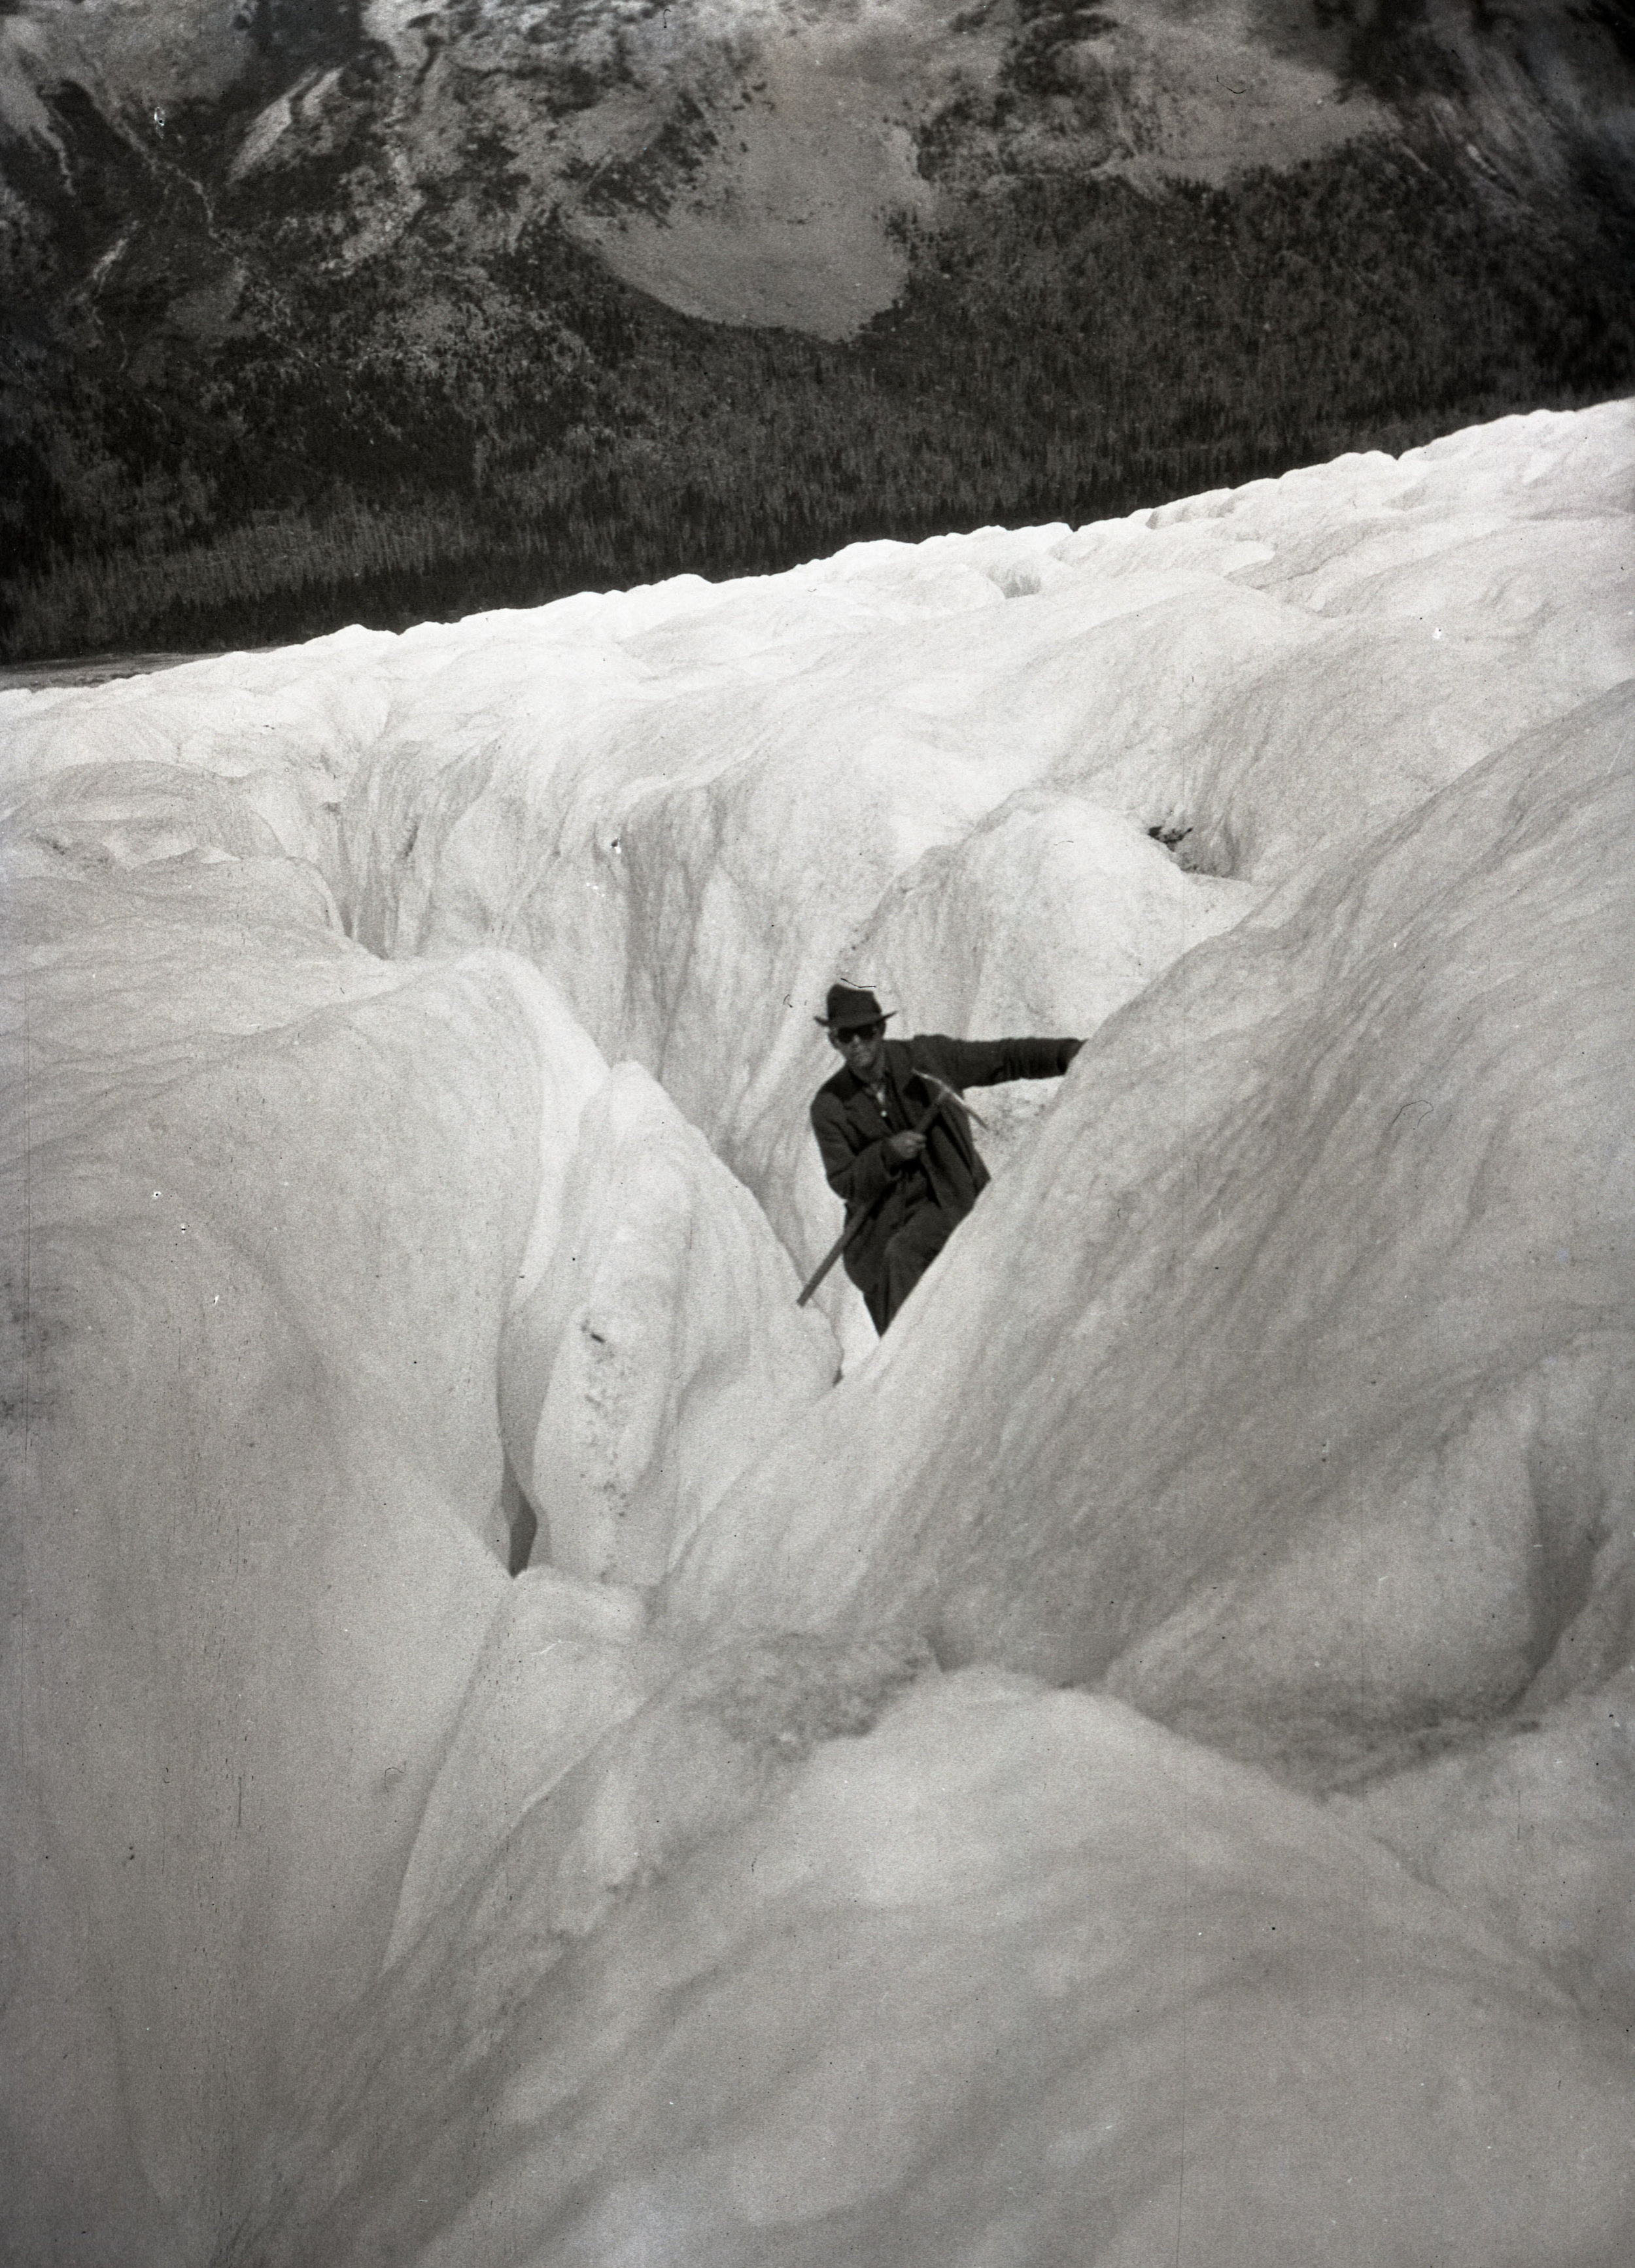 A man making his way through a crevasse on Robson Glacier, Mount Robson